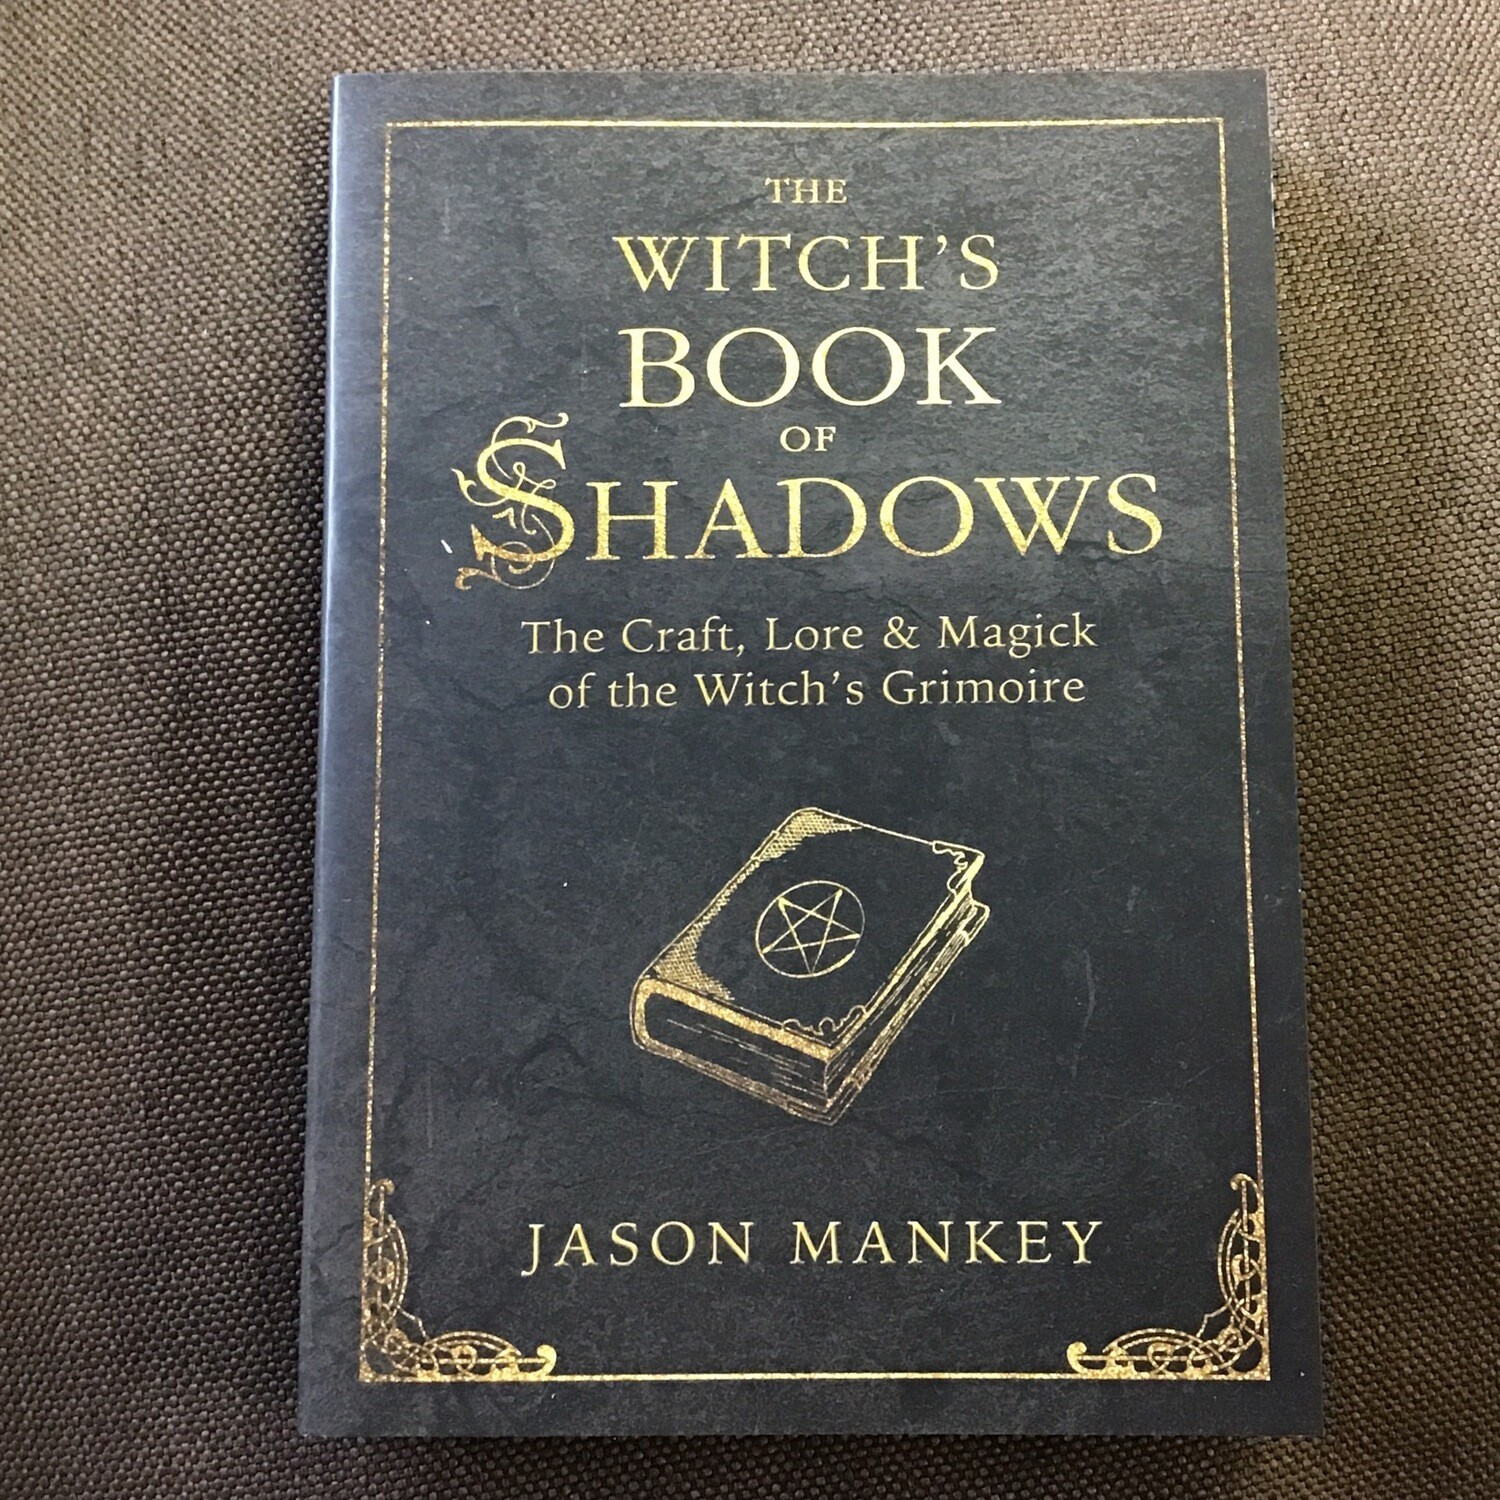 The Witch's Book of Shadows by Jason Mankey